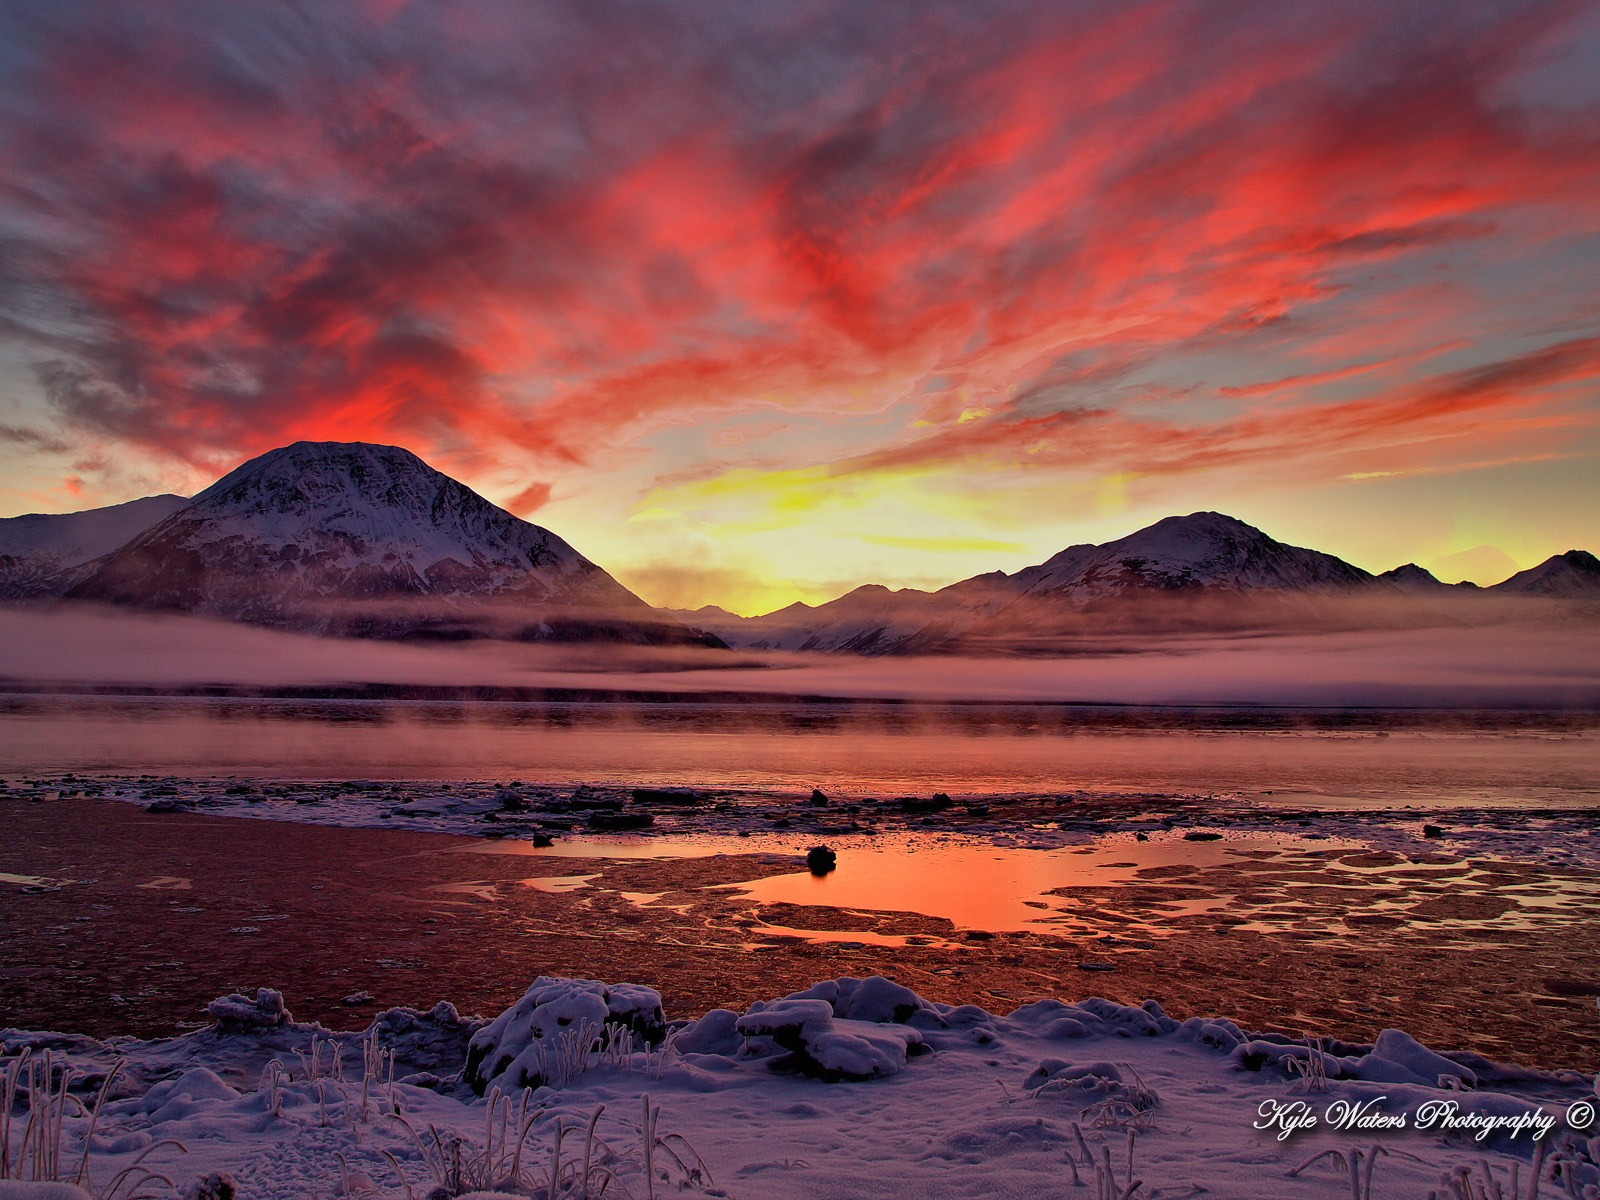 Beautiful alaska natural scenery desktop wallpaper 02 - Desktop wallpaper 1600x1200 ...